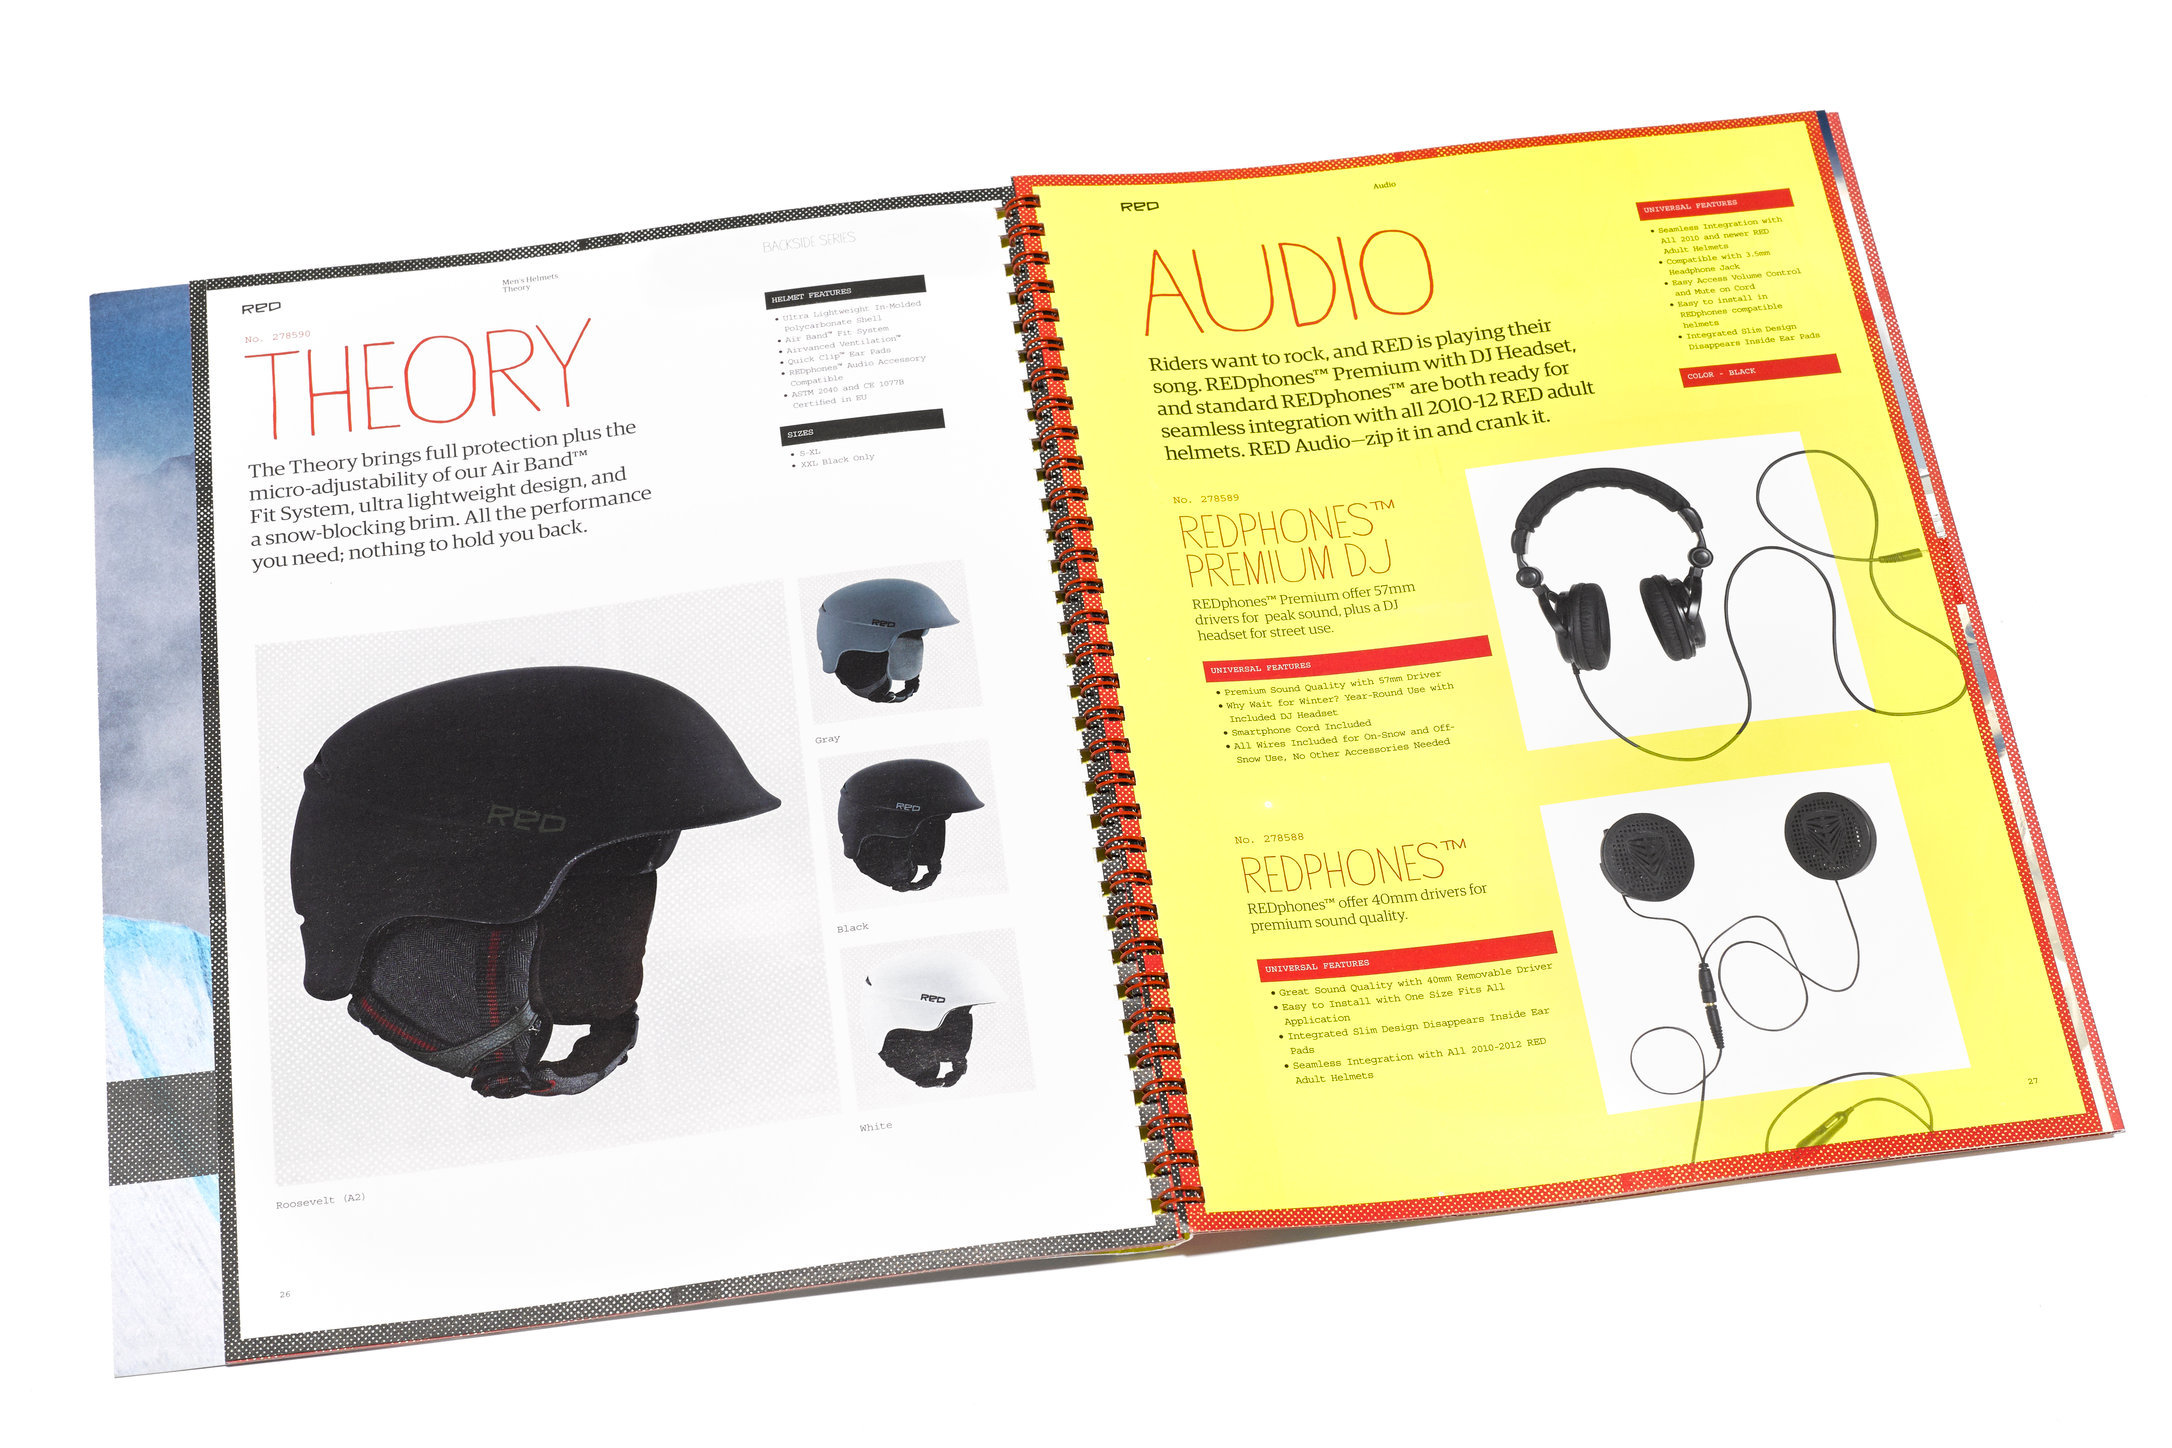 Anon helmets and audio components